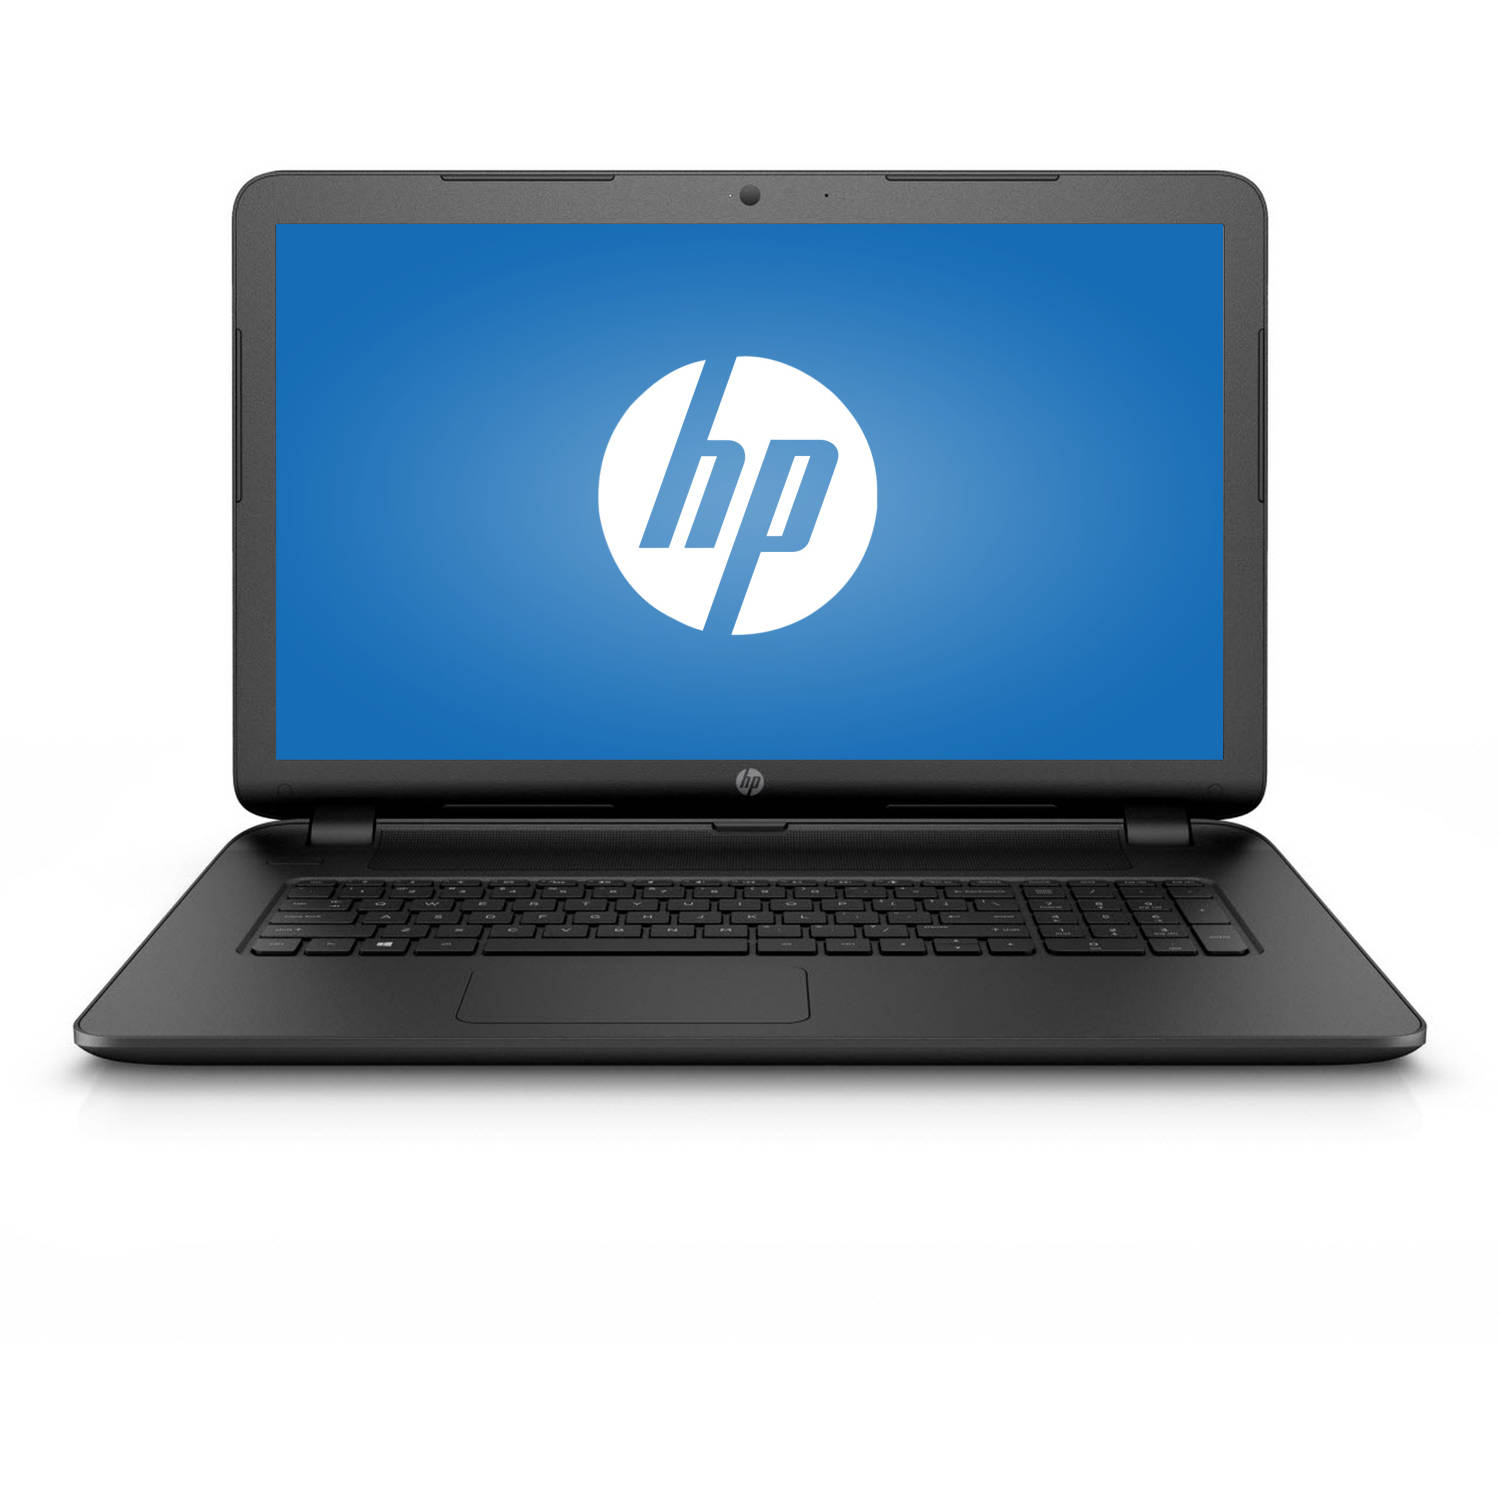 HP Pavilion 17 - p110nr 17.3 Laptop, Windows 10 Home, AMD A6 - 6310 Processor, 6GB RAM, 750GB Hard Drive Refurbished